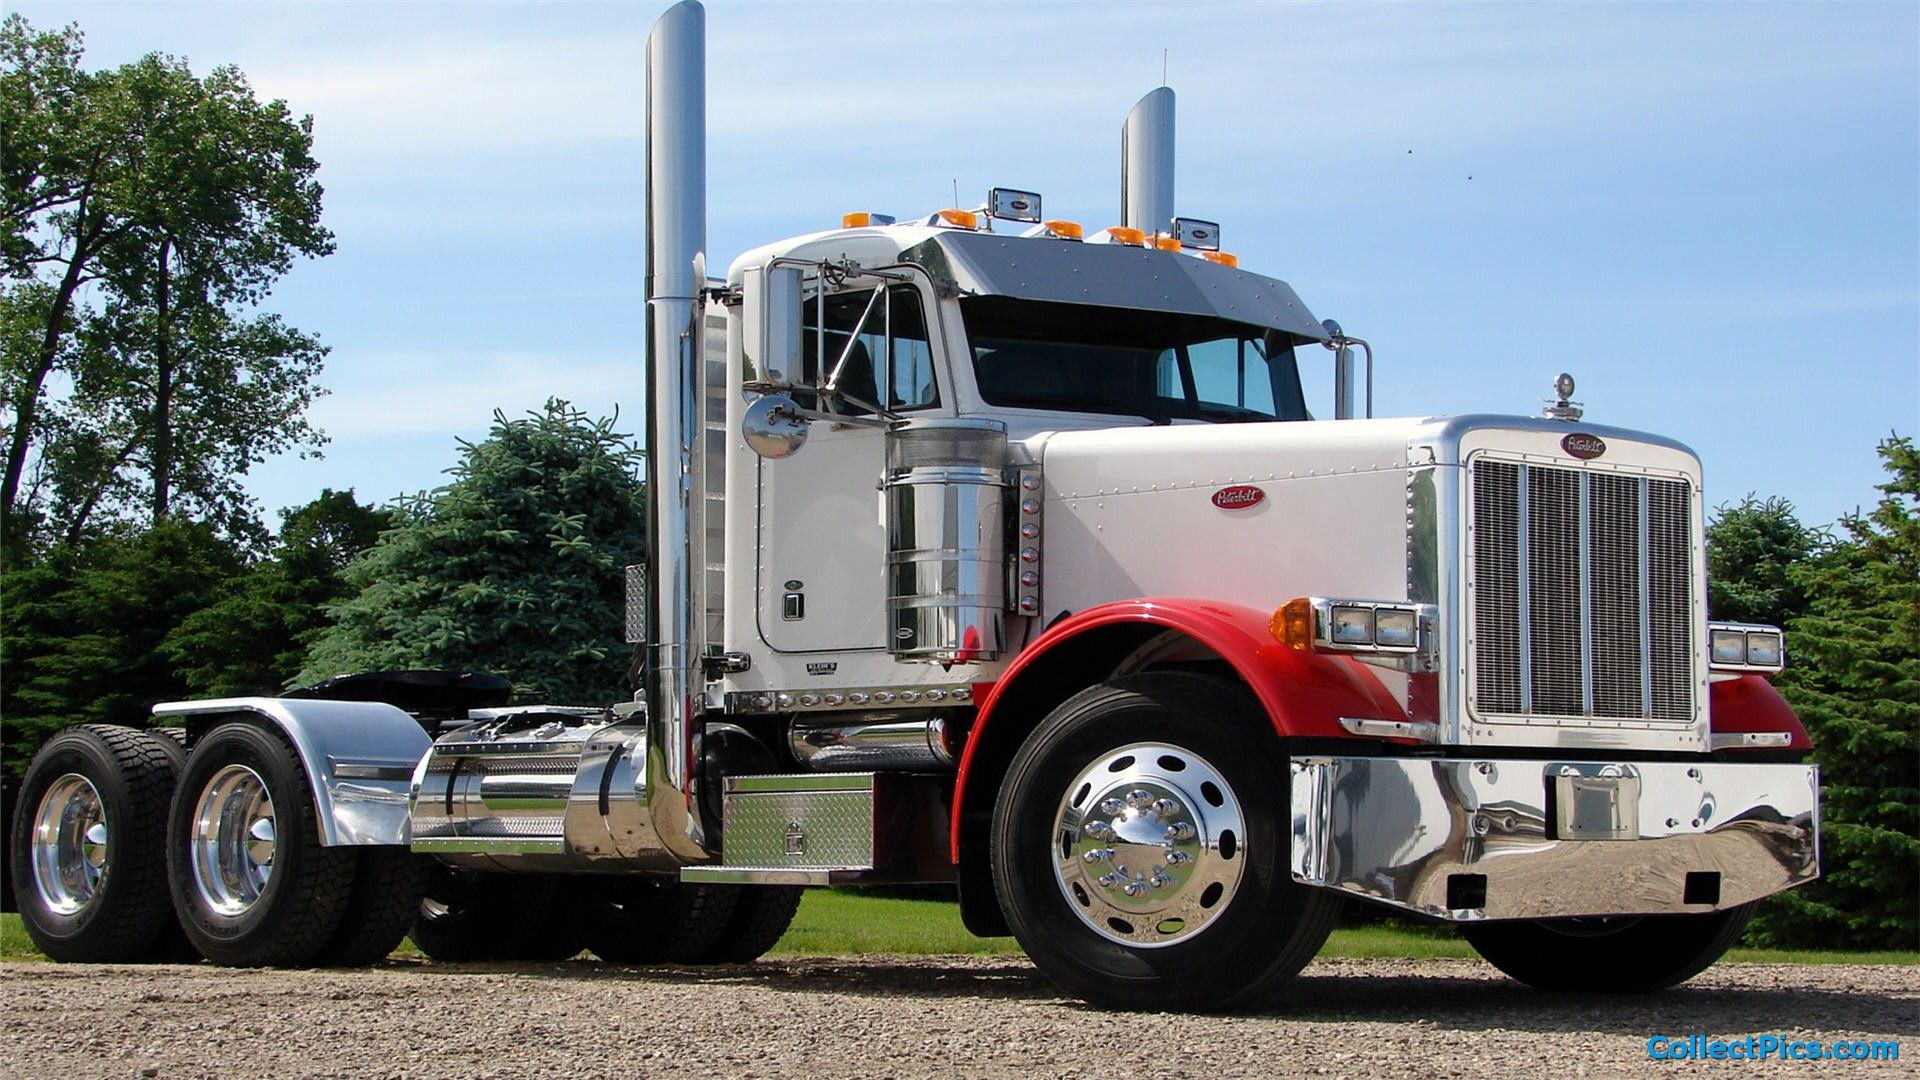 Peterbilt Truck Wallpaper Hd 1920x1080 With Images Peterbilt